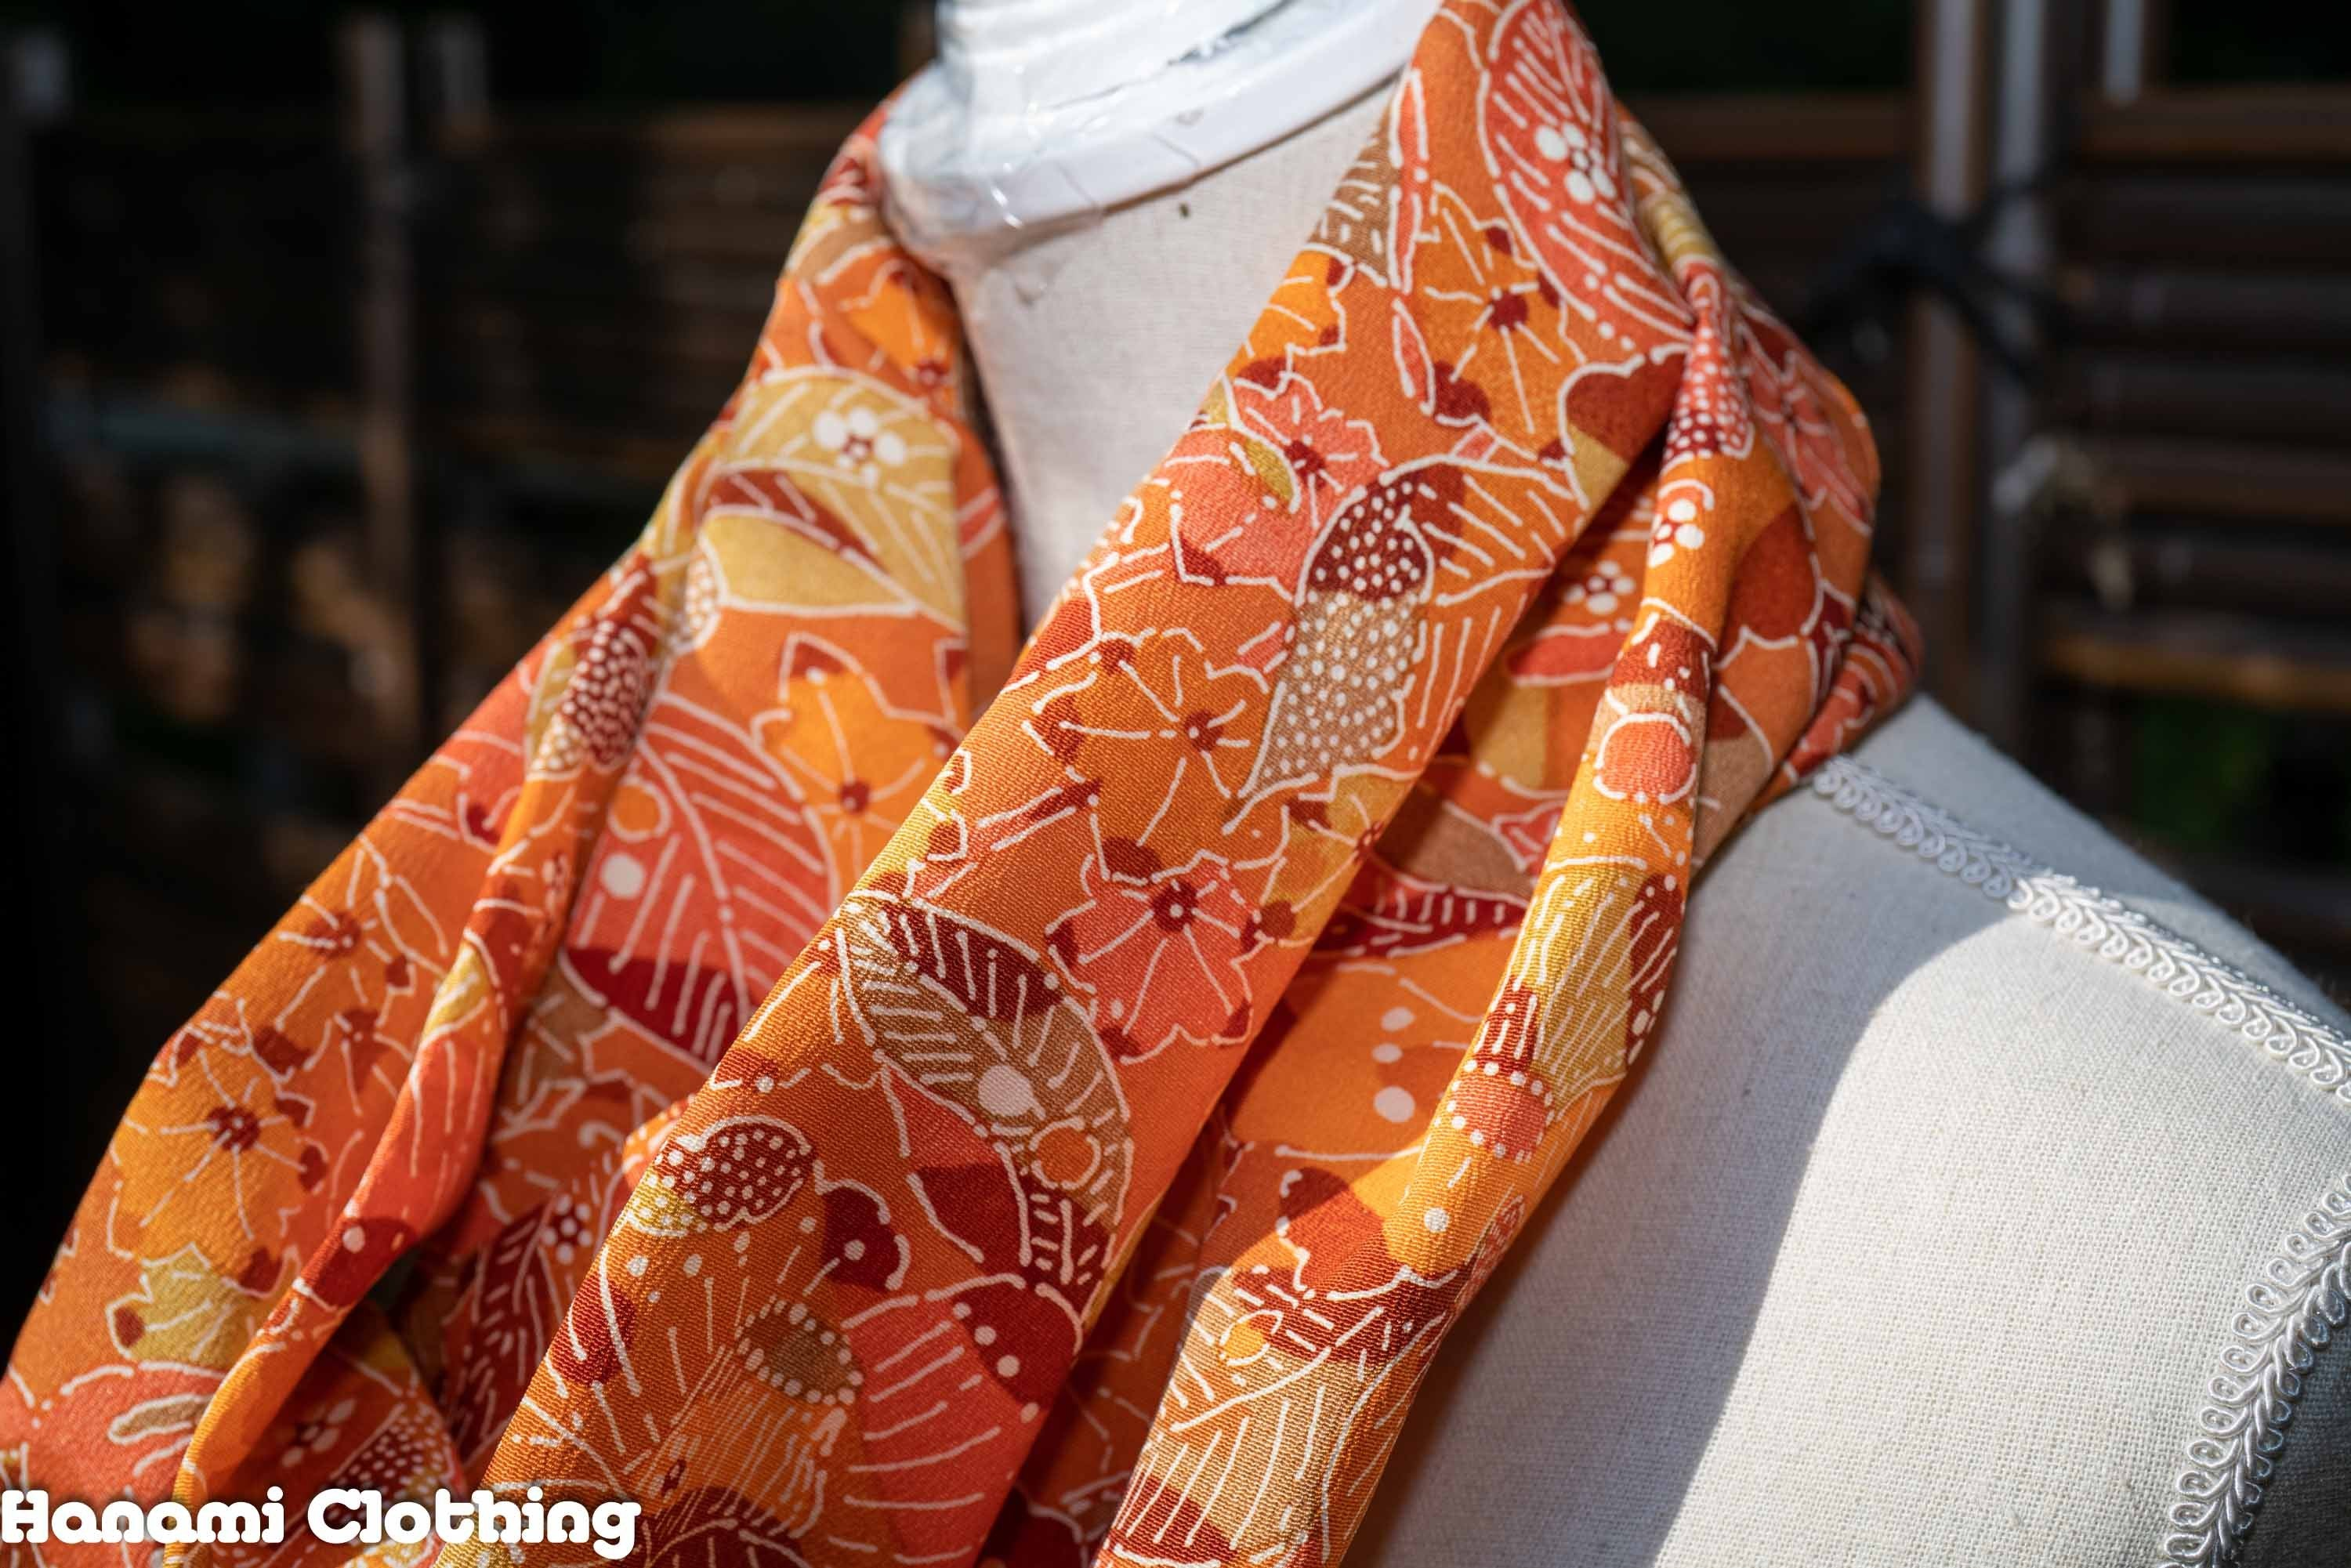 Perfect Autumn Infinity Scarf - Japanese Leaves Kimono Fabric - Orange Brown Green Red Fall Pattern - Retro Style Silk Wool